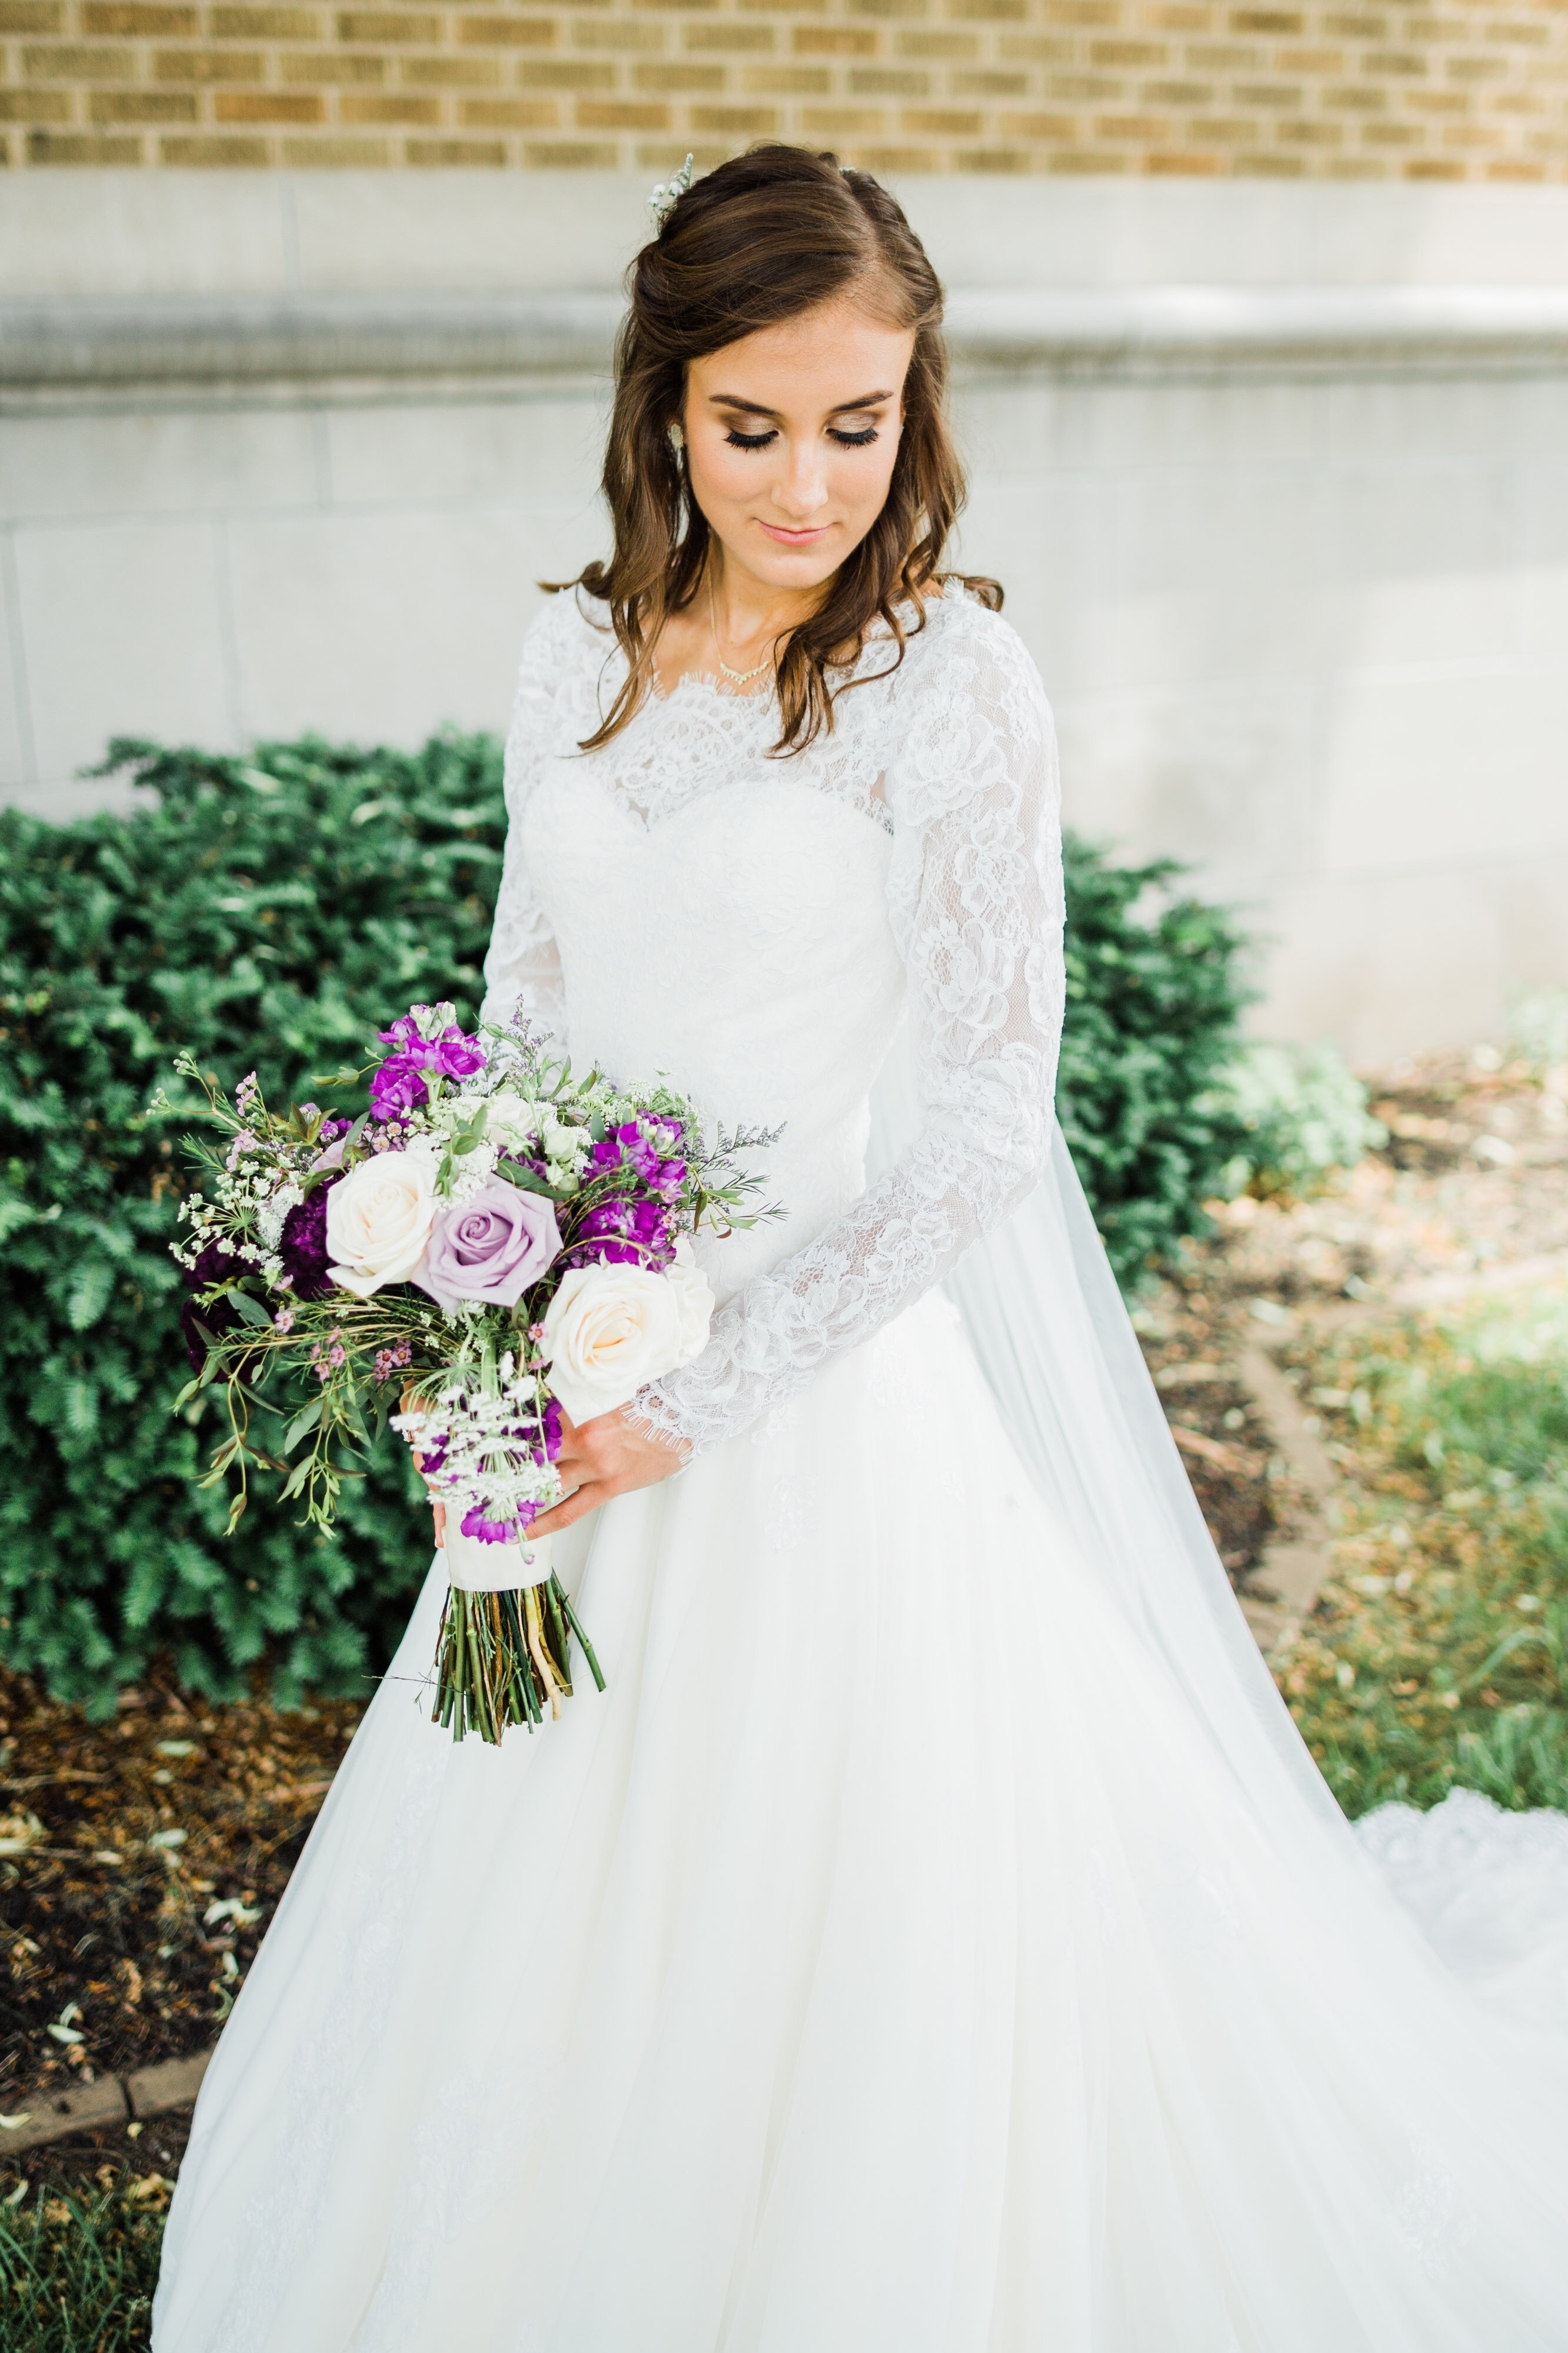 This bride designed a stunning long sleeve lace wedding dress online with Anomalie.